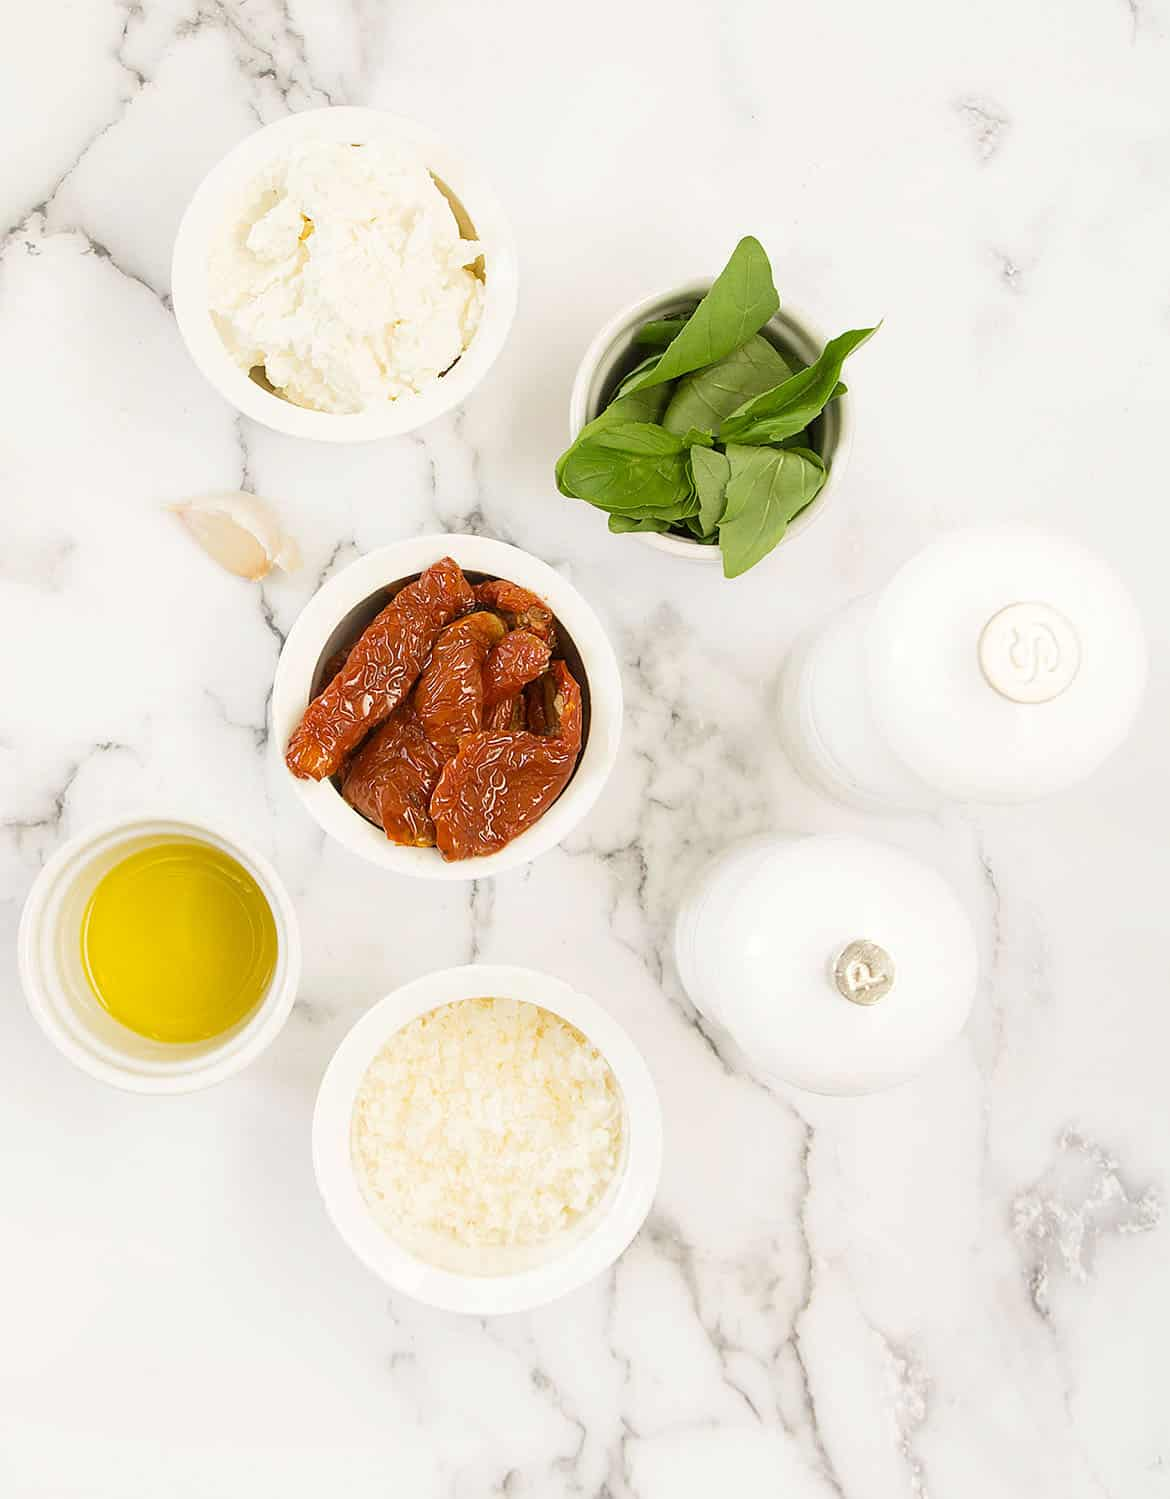 The ingredients for this sun dried tomato pesto are arranged on a white marble surface.